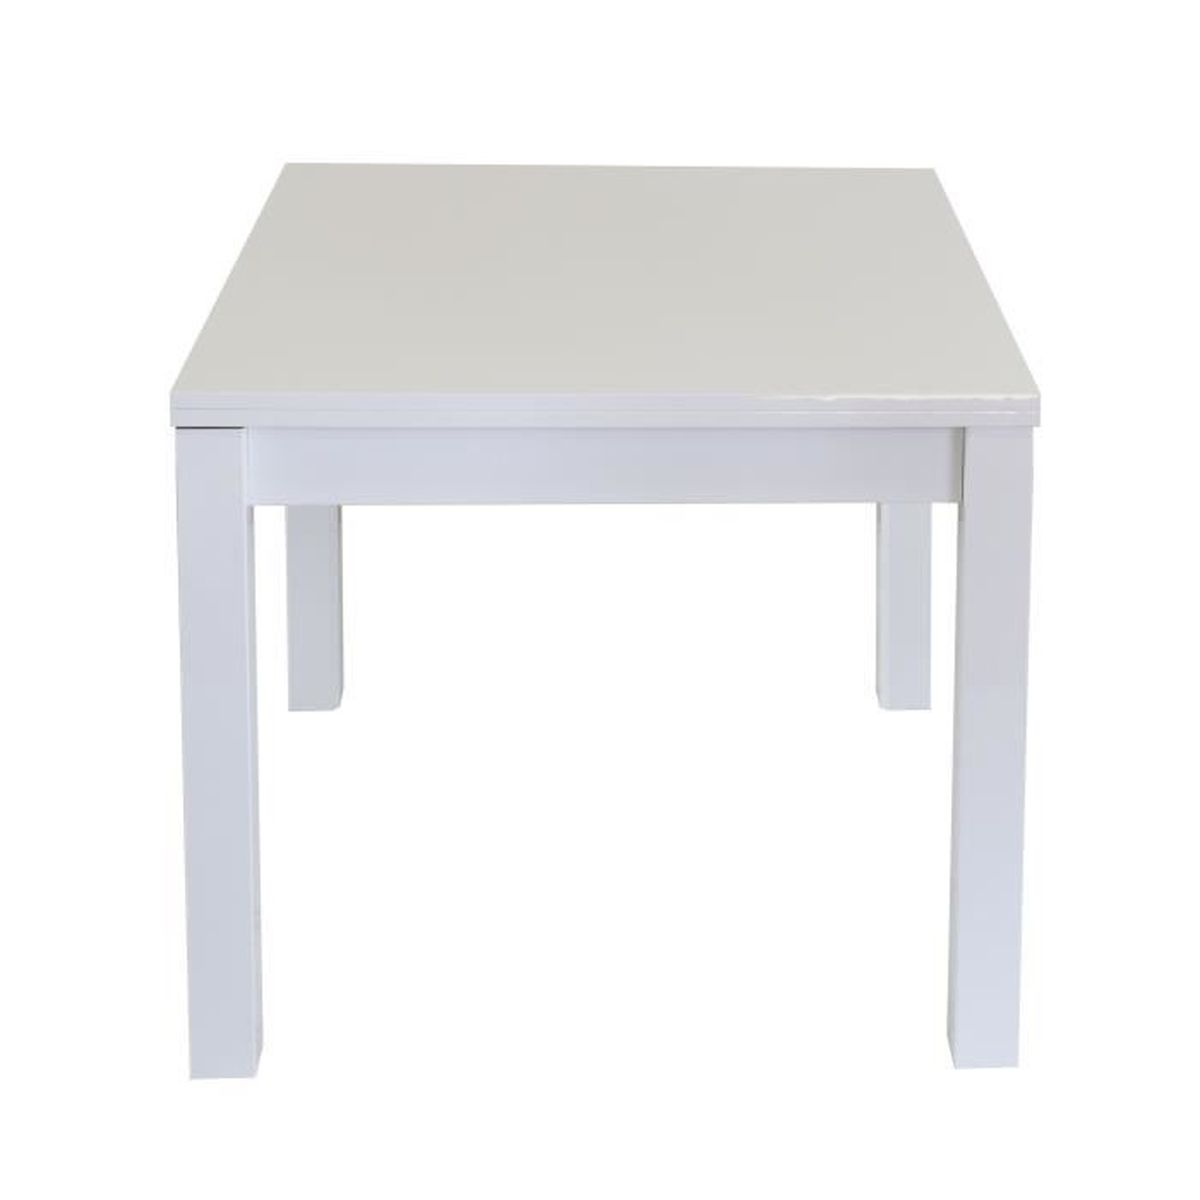 Arsene table de repas extensible de 90cm 180cm naturel for Table extensible 350 cm